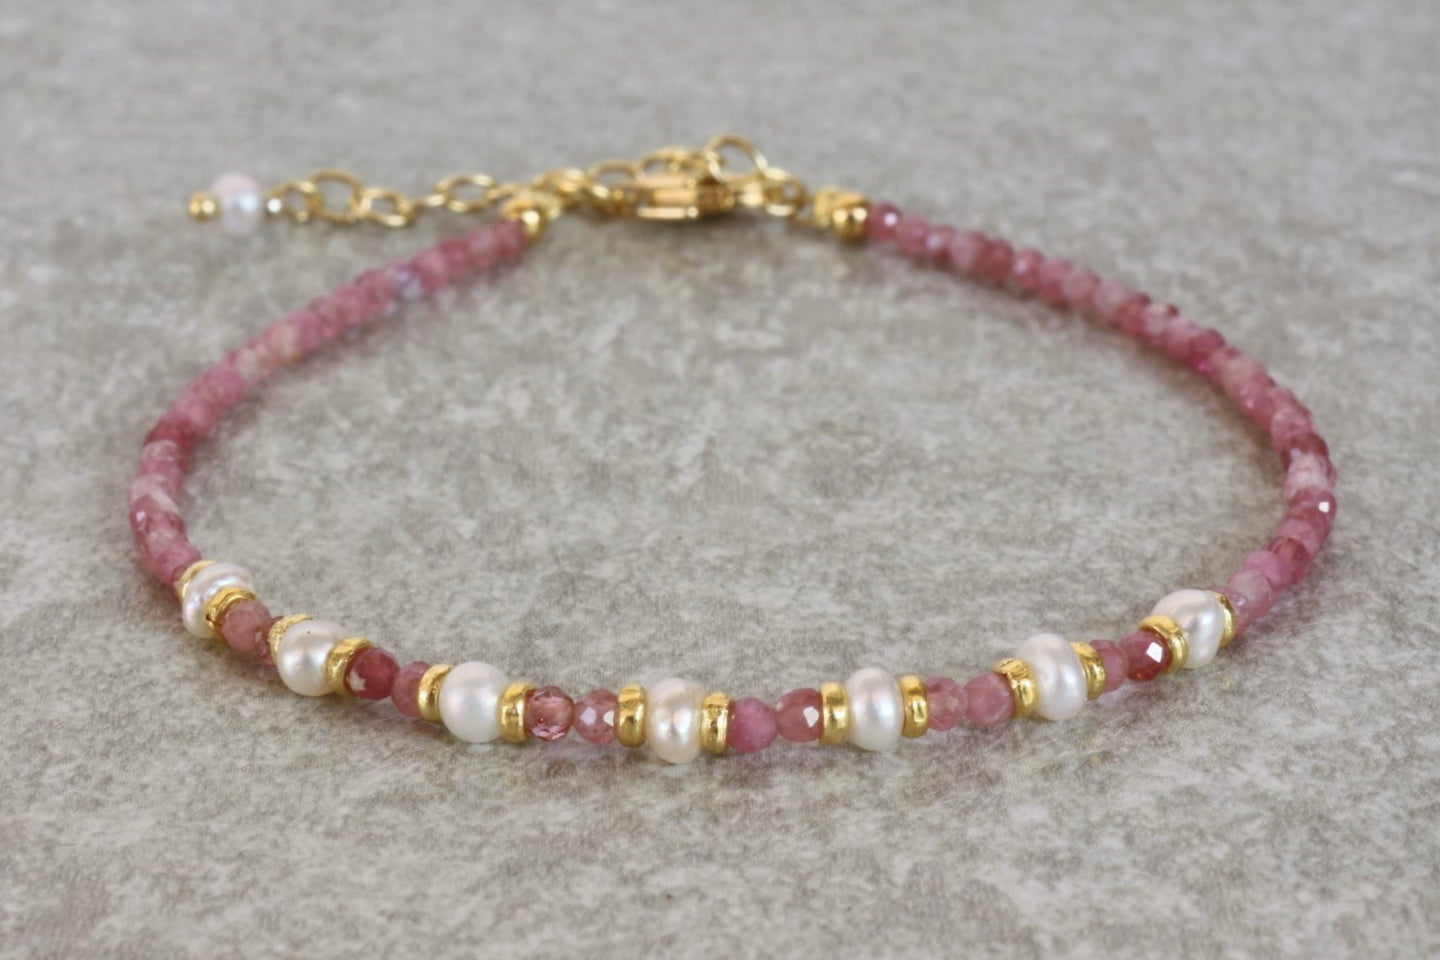 Natural pink Tourmaline beaded bracelet with freshwater pearls